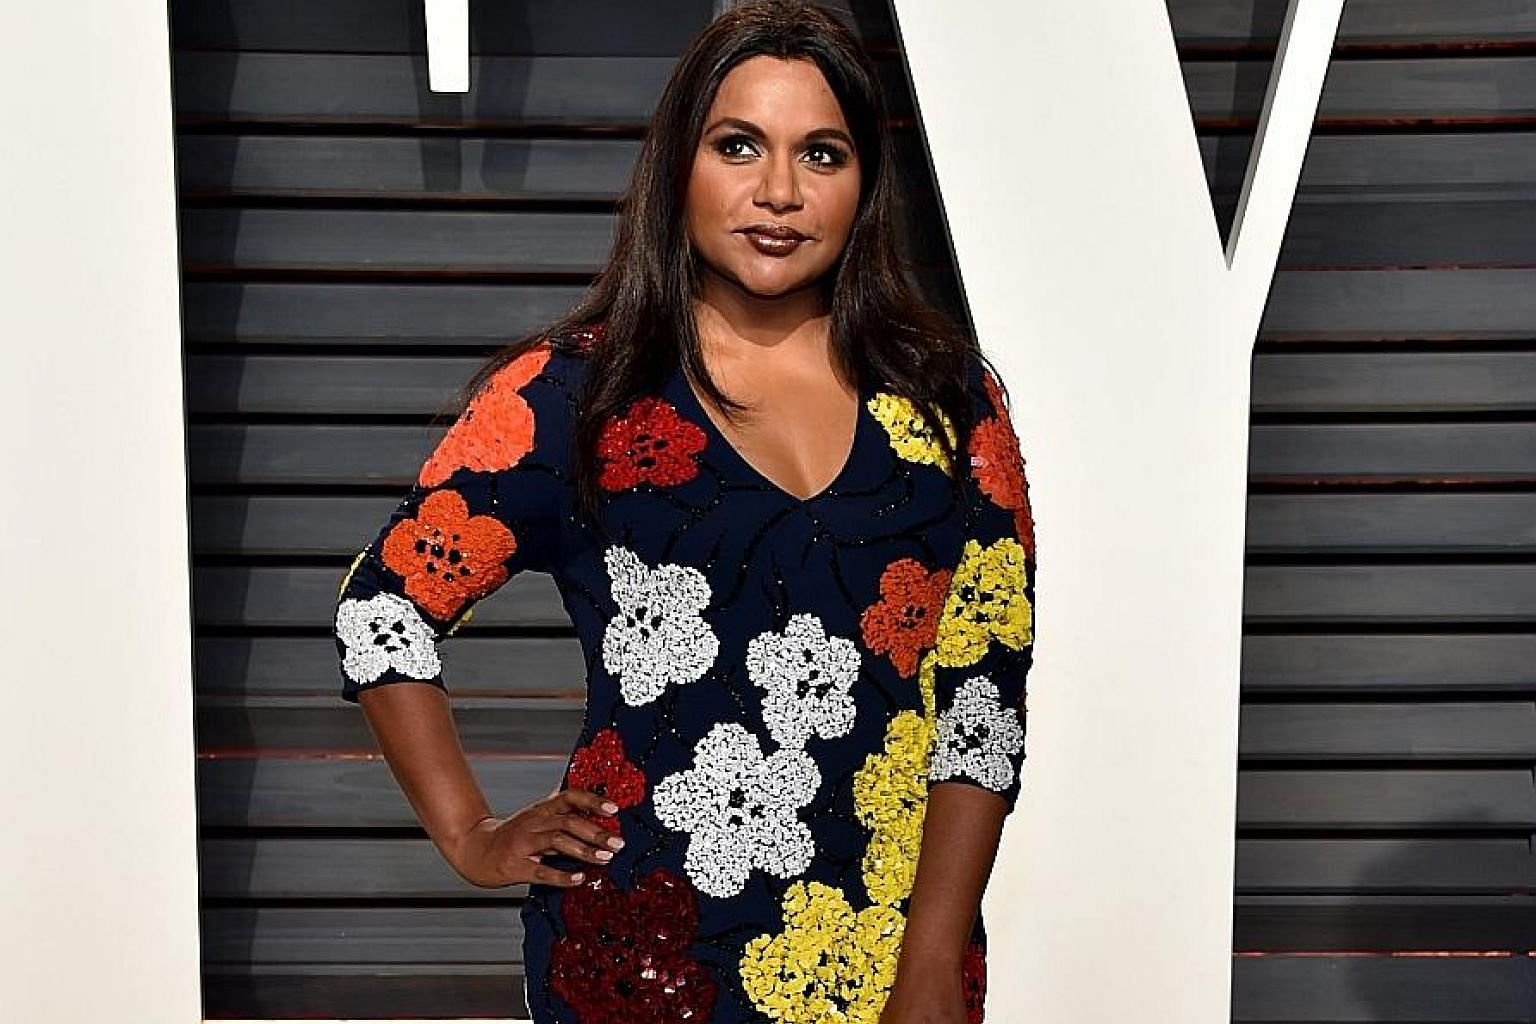 Actress Mindy Kaling (above) and Democratic Senator Cory Booker have between them 10 million Twitter followers.